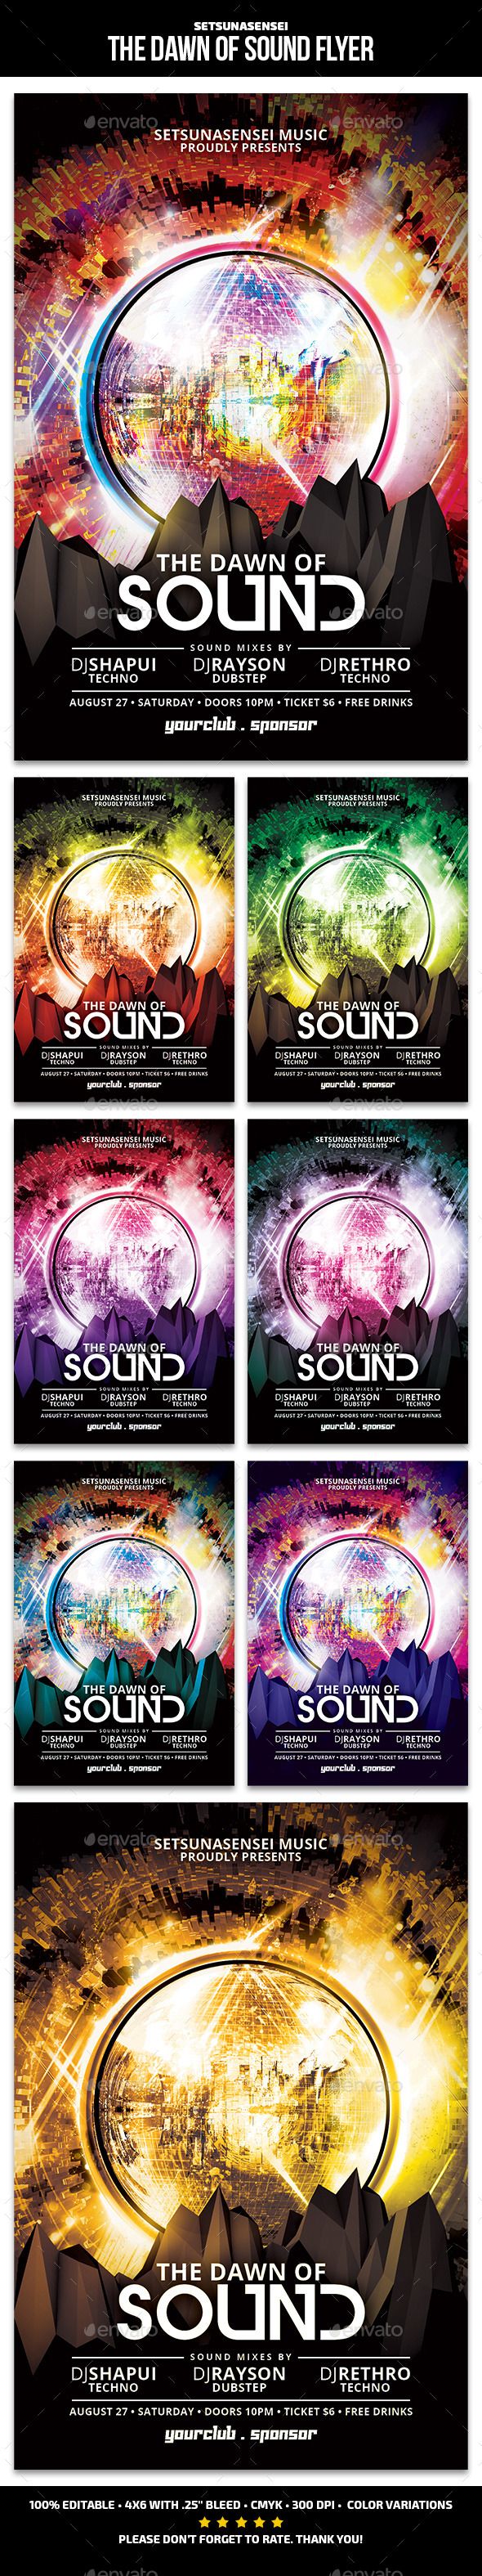 Dawn of Sound Flyer - Clubs & Parties Events